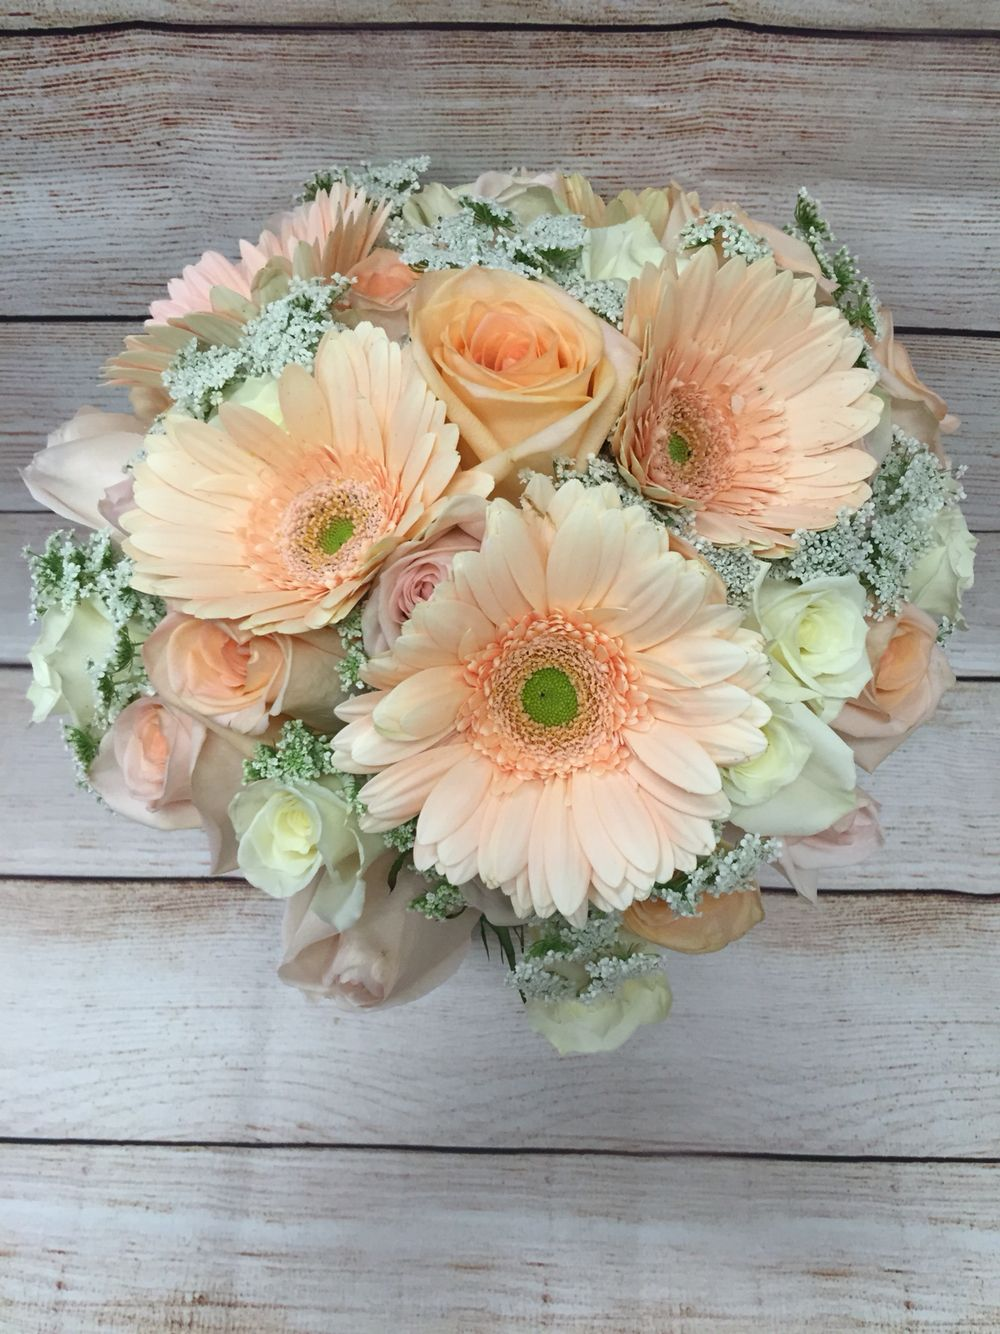 Light Peach Coral Gerbera Daisy White Rose Wedding Bouquet